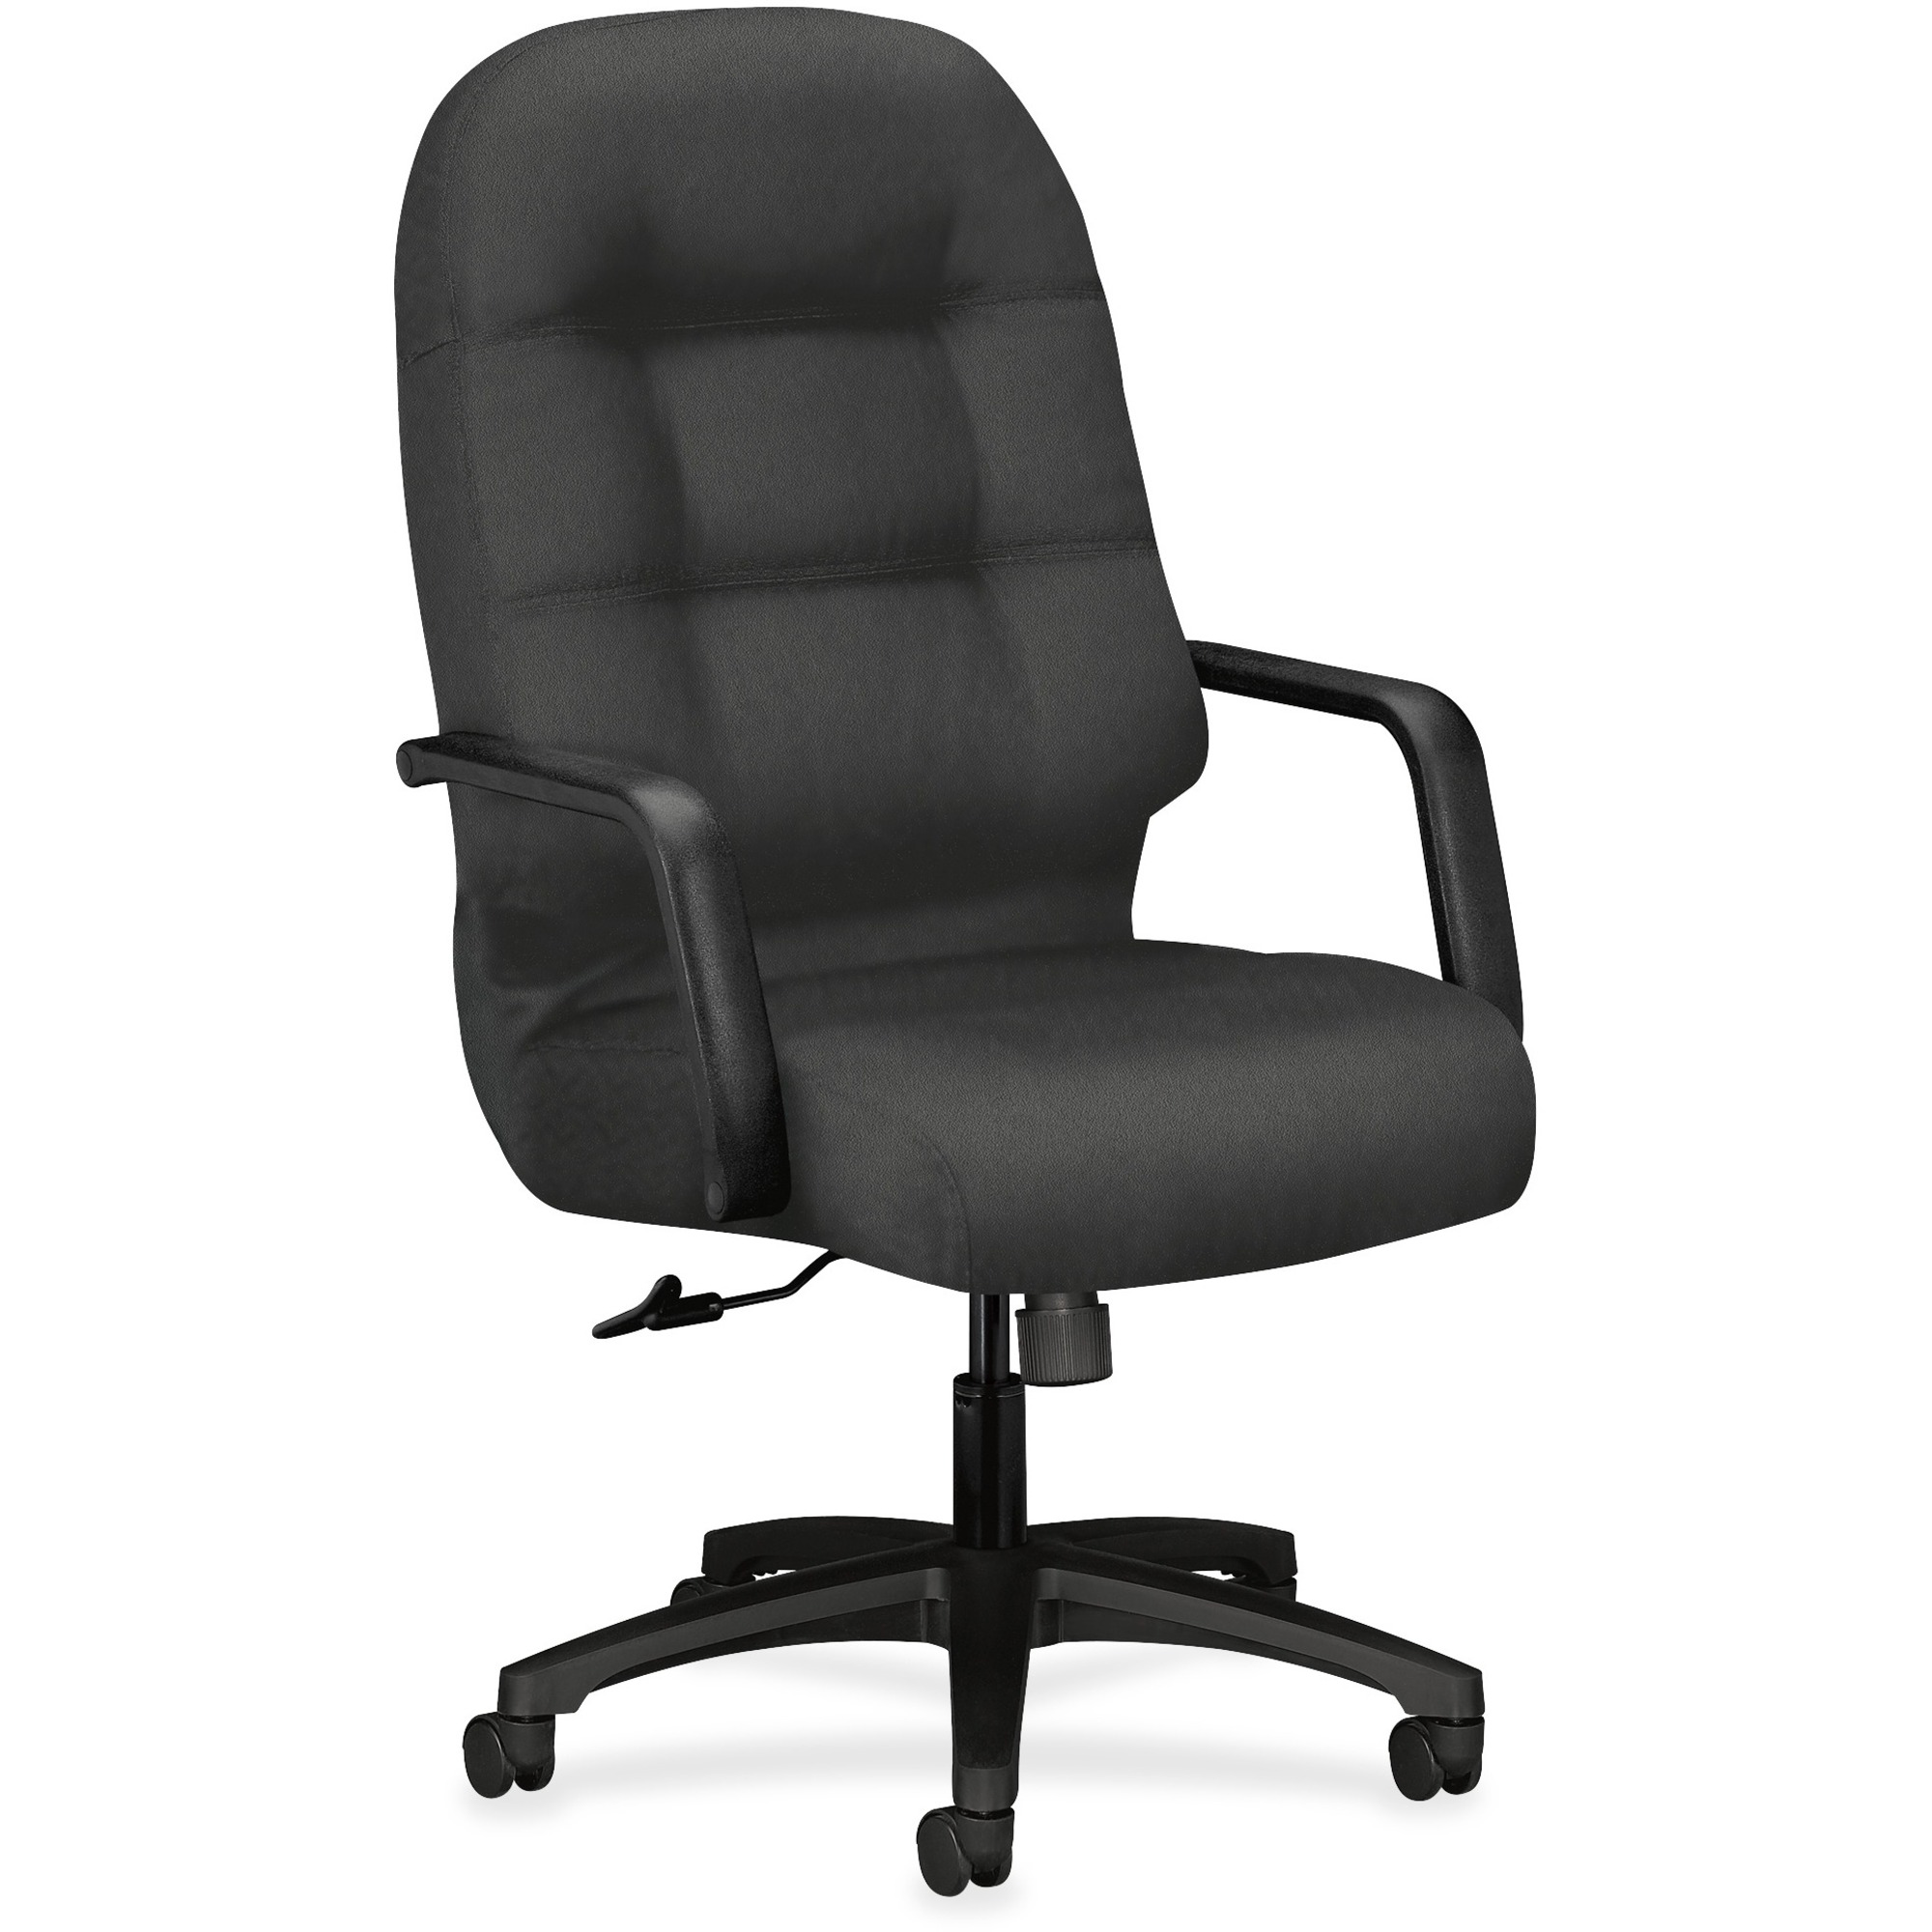 The Hon Company Hon Pillow-soft Executive Chair - Polyester Iron Seat - Polyester Iron Back - Black Frame - 5-star Base - 22 Seat Width X 19 Seat Depth - 26.3 Width X 29.8 Depth X 46.5 Height